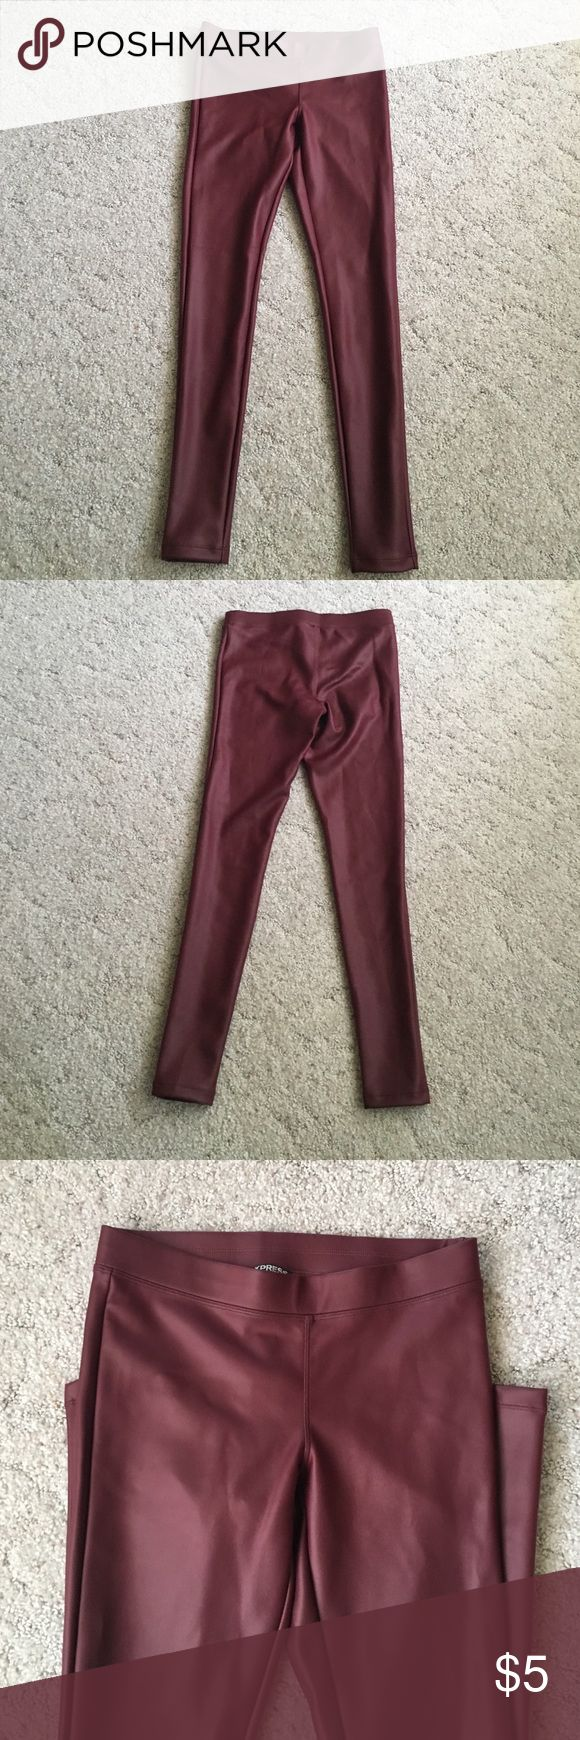 Maroon faux leather leggings Maroon faux leather leggings good stretch 31/32in inseam never worn. Express Pants Leggings